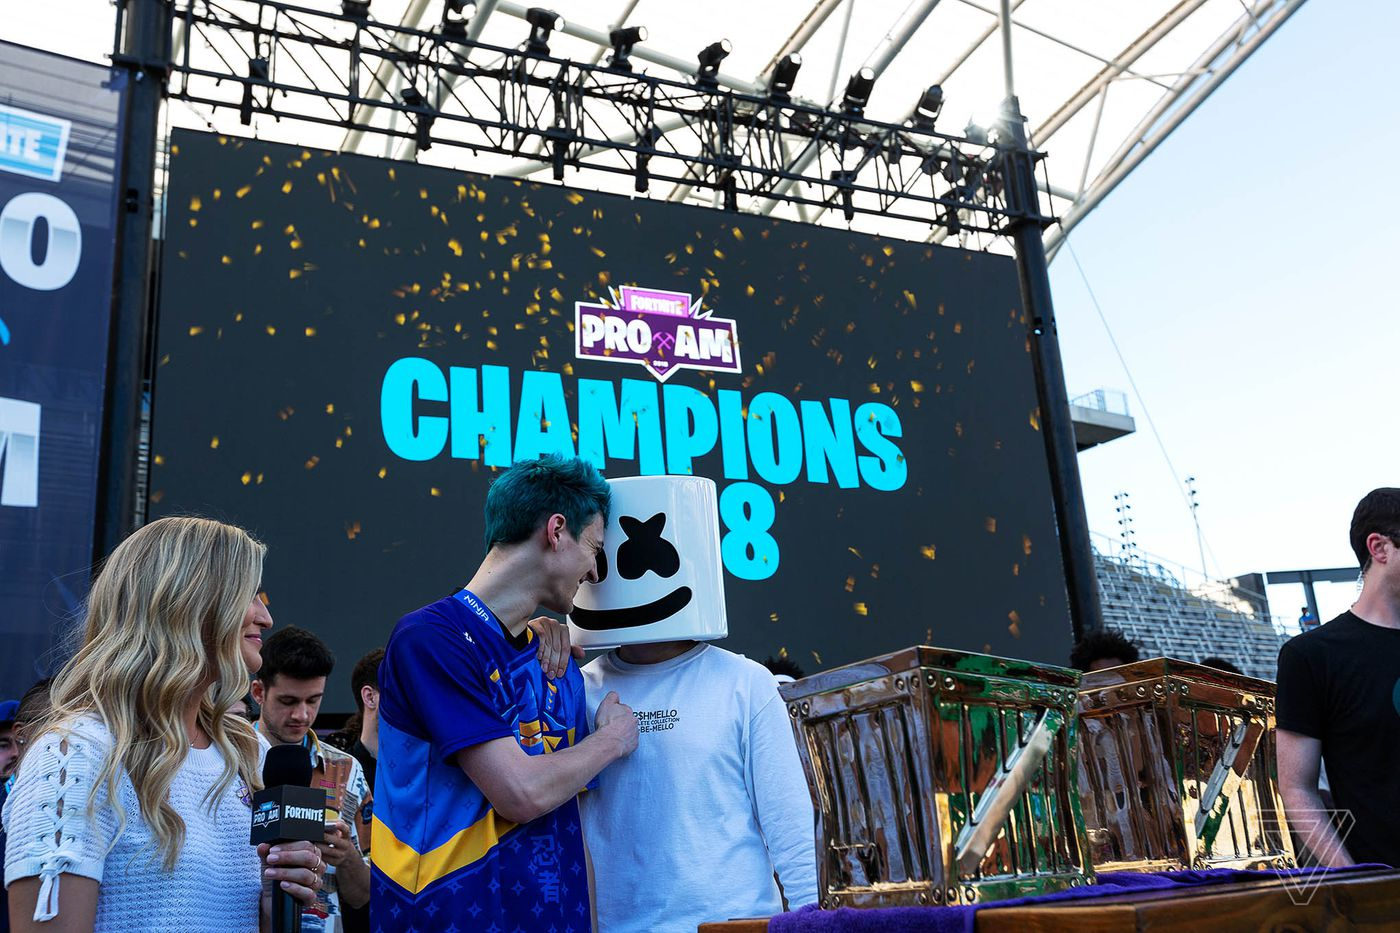 Fortnite's celebrity tournament felt like a trial run for